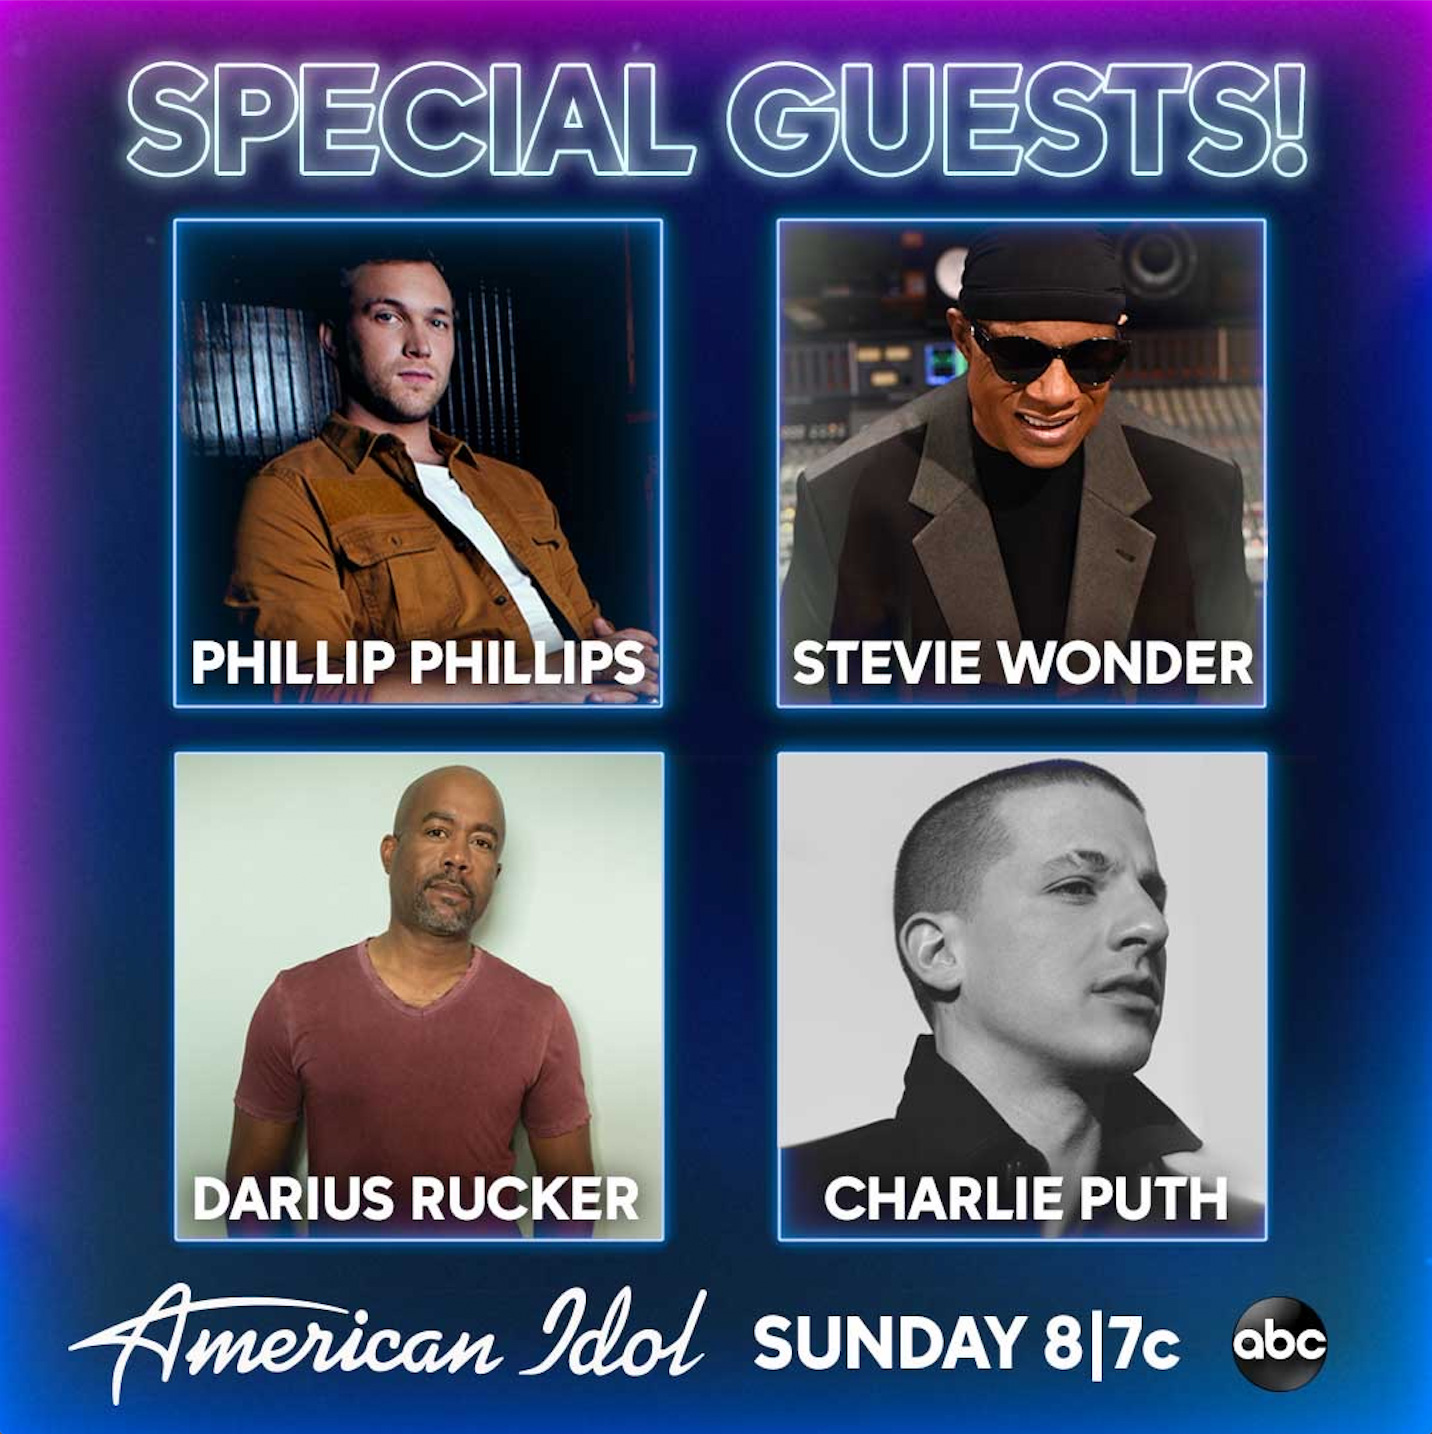 American Idol Guest Judges - Charlie Puth, Stevie Wonder and Darius Rucker To Make Appearances During Virtual Episode